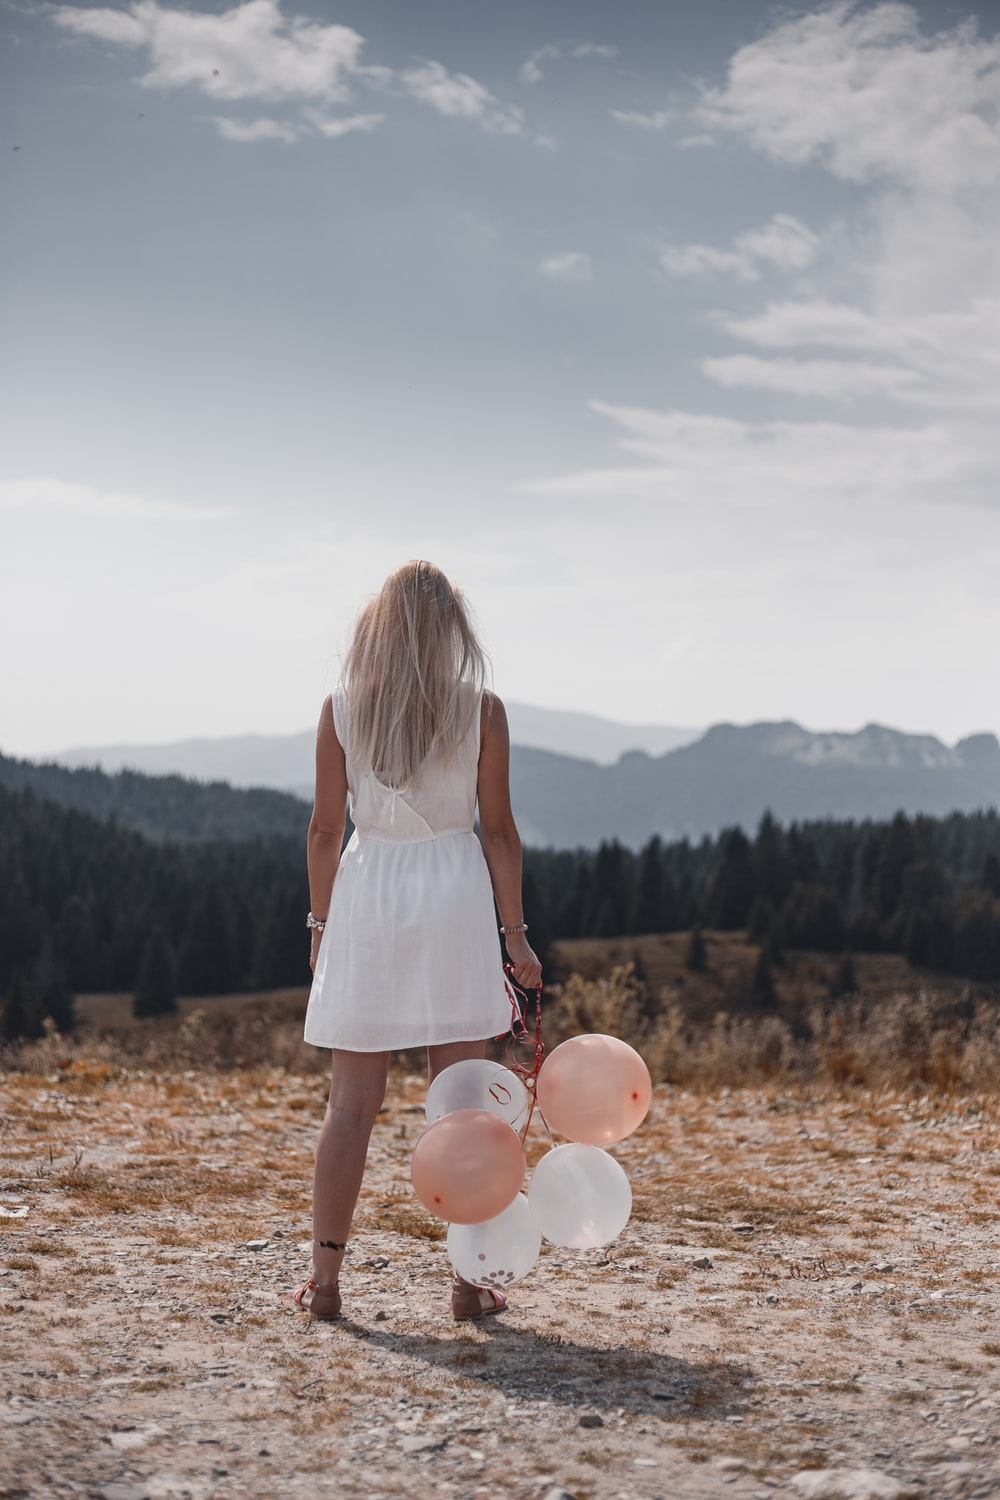 woman in white dress holding balloons